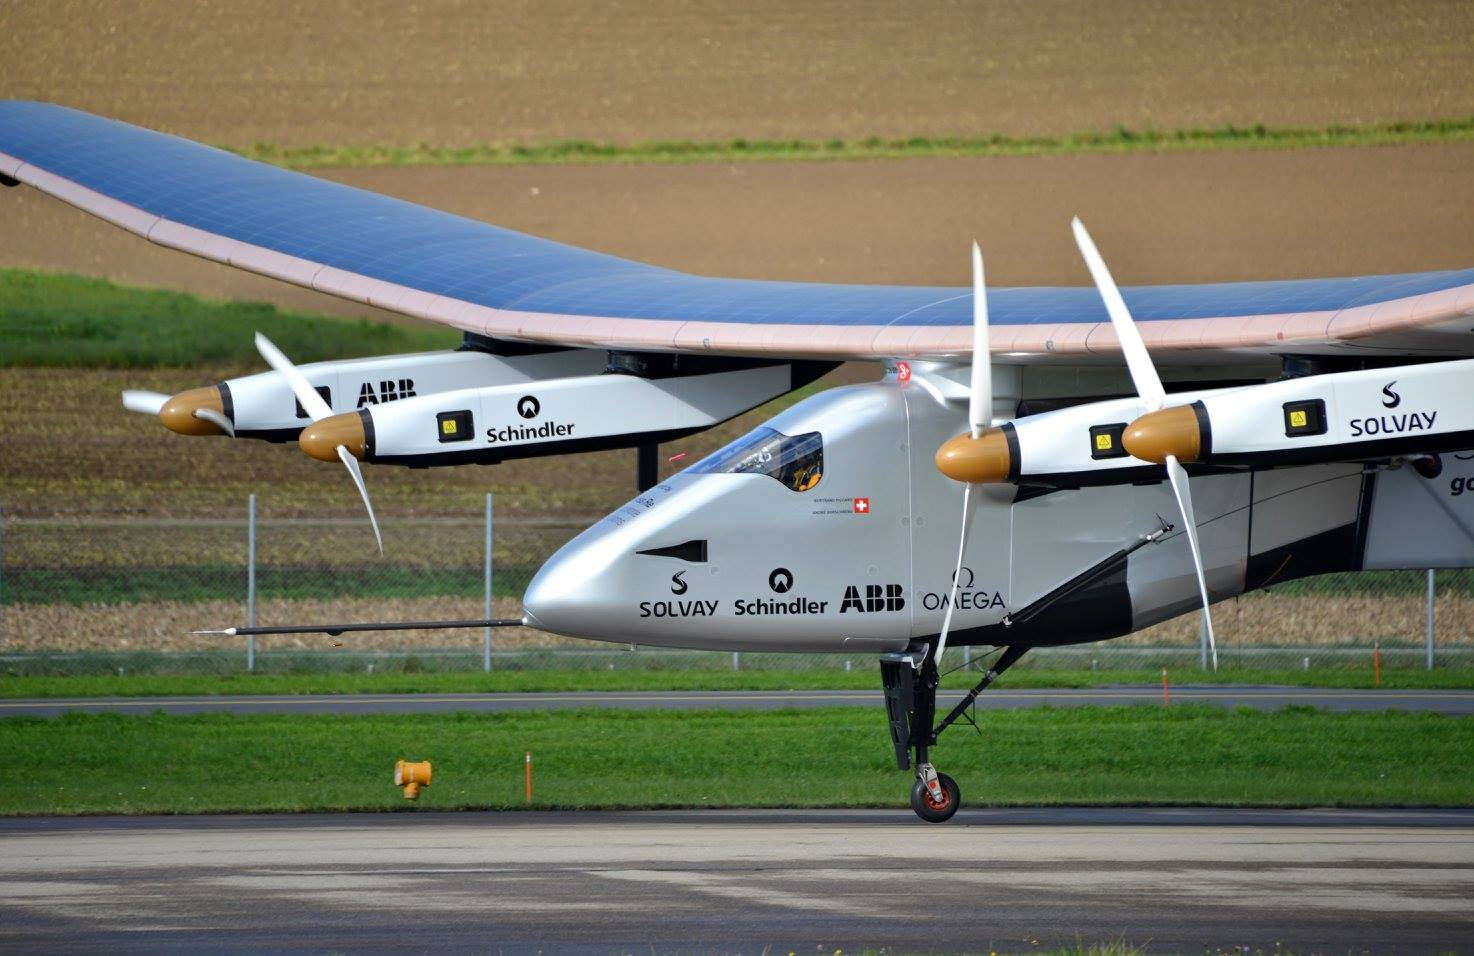 Investors respond better to the profit potential of green innovations such as solar-powered planes rather than their eco-credentials, according to Dr Bertrand Piccard, founder of Solar Impulse.